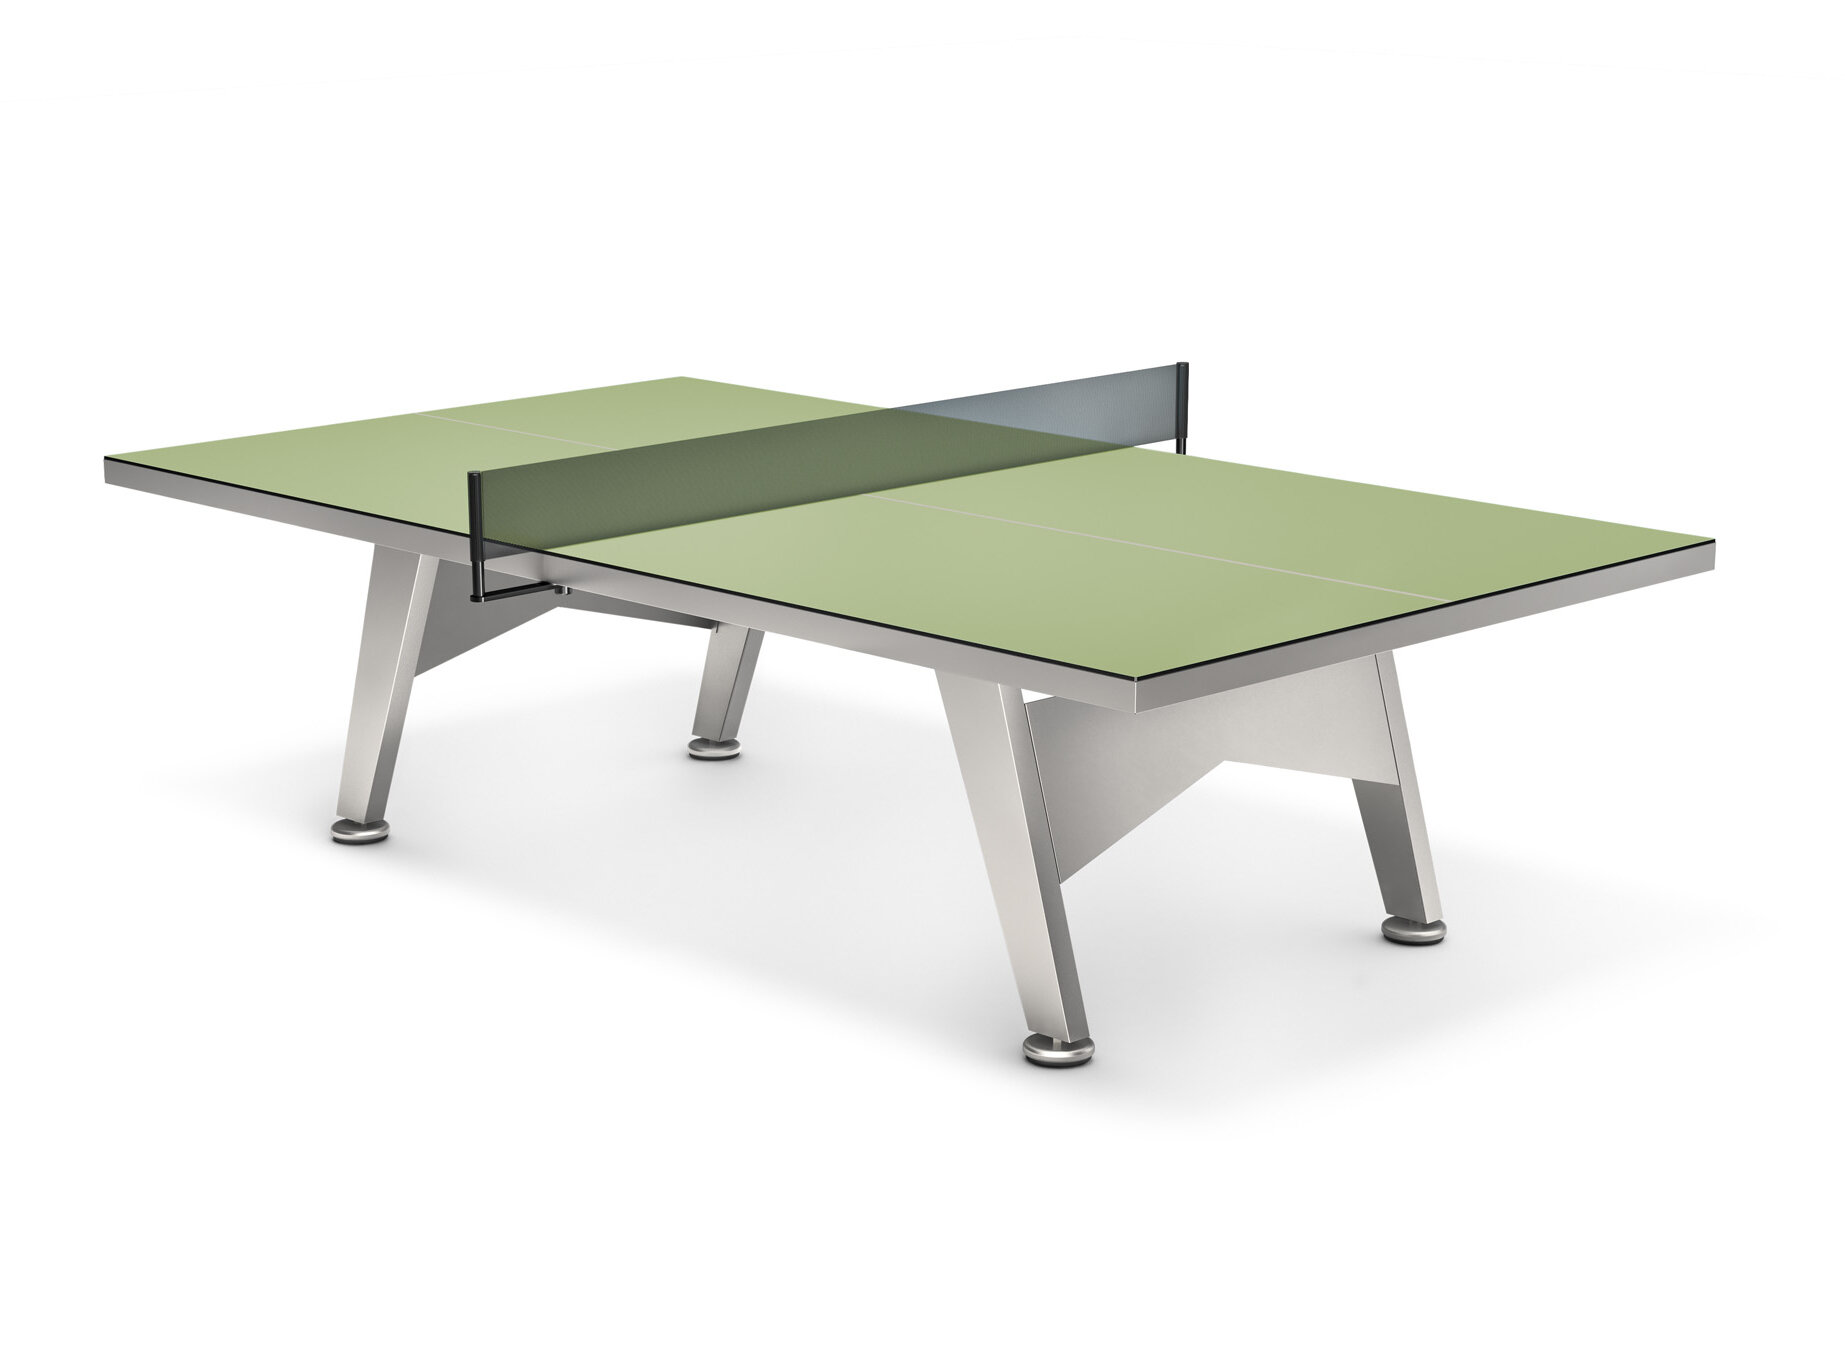 JANUS Et Cie Outdoor Table Tennis Table With Accessories | Wayfair